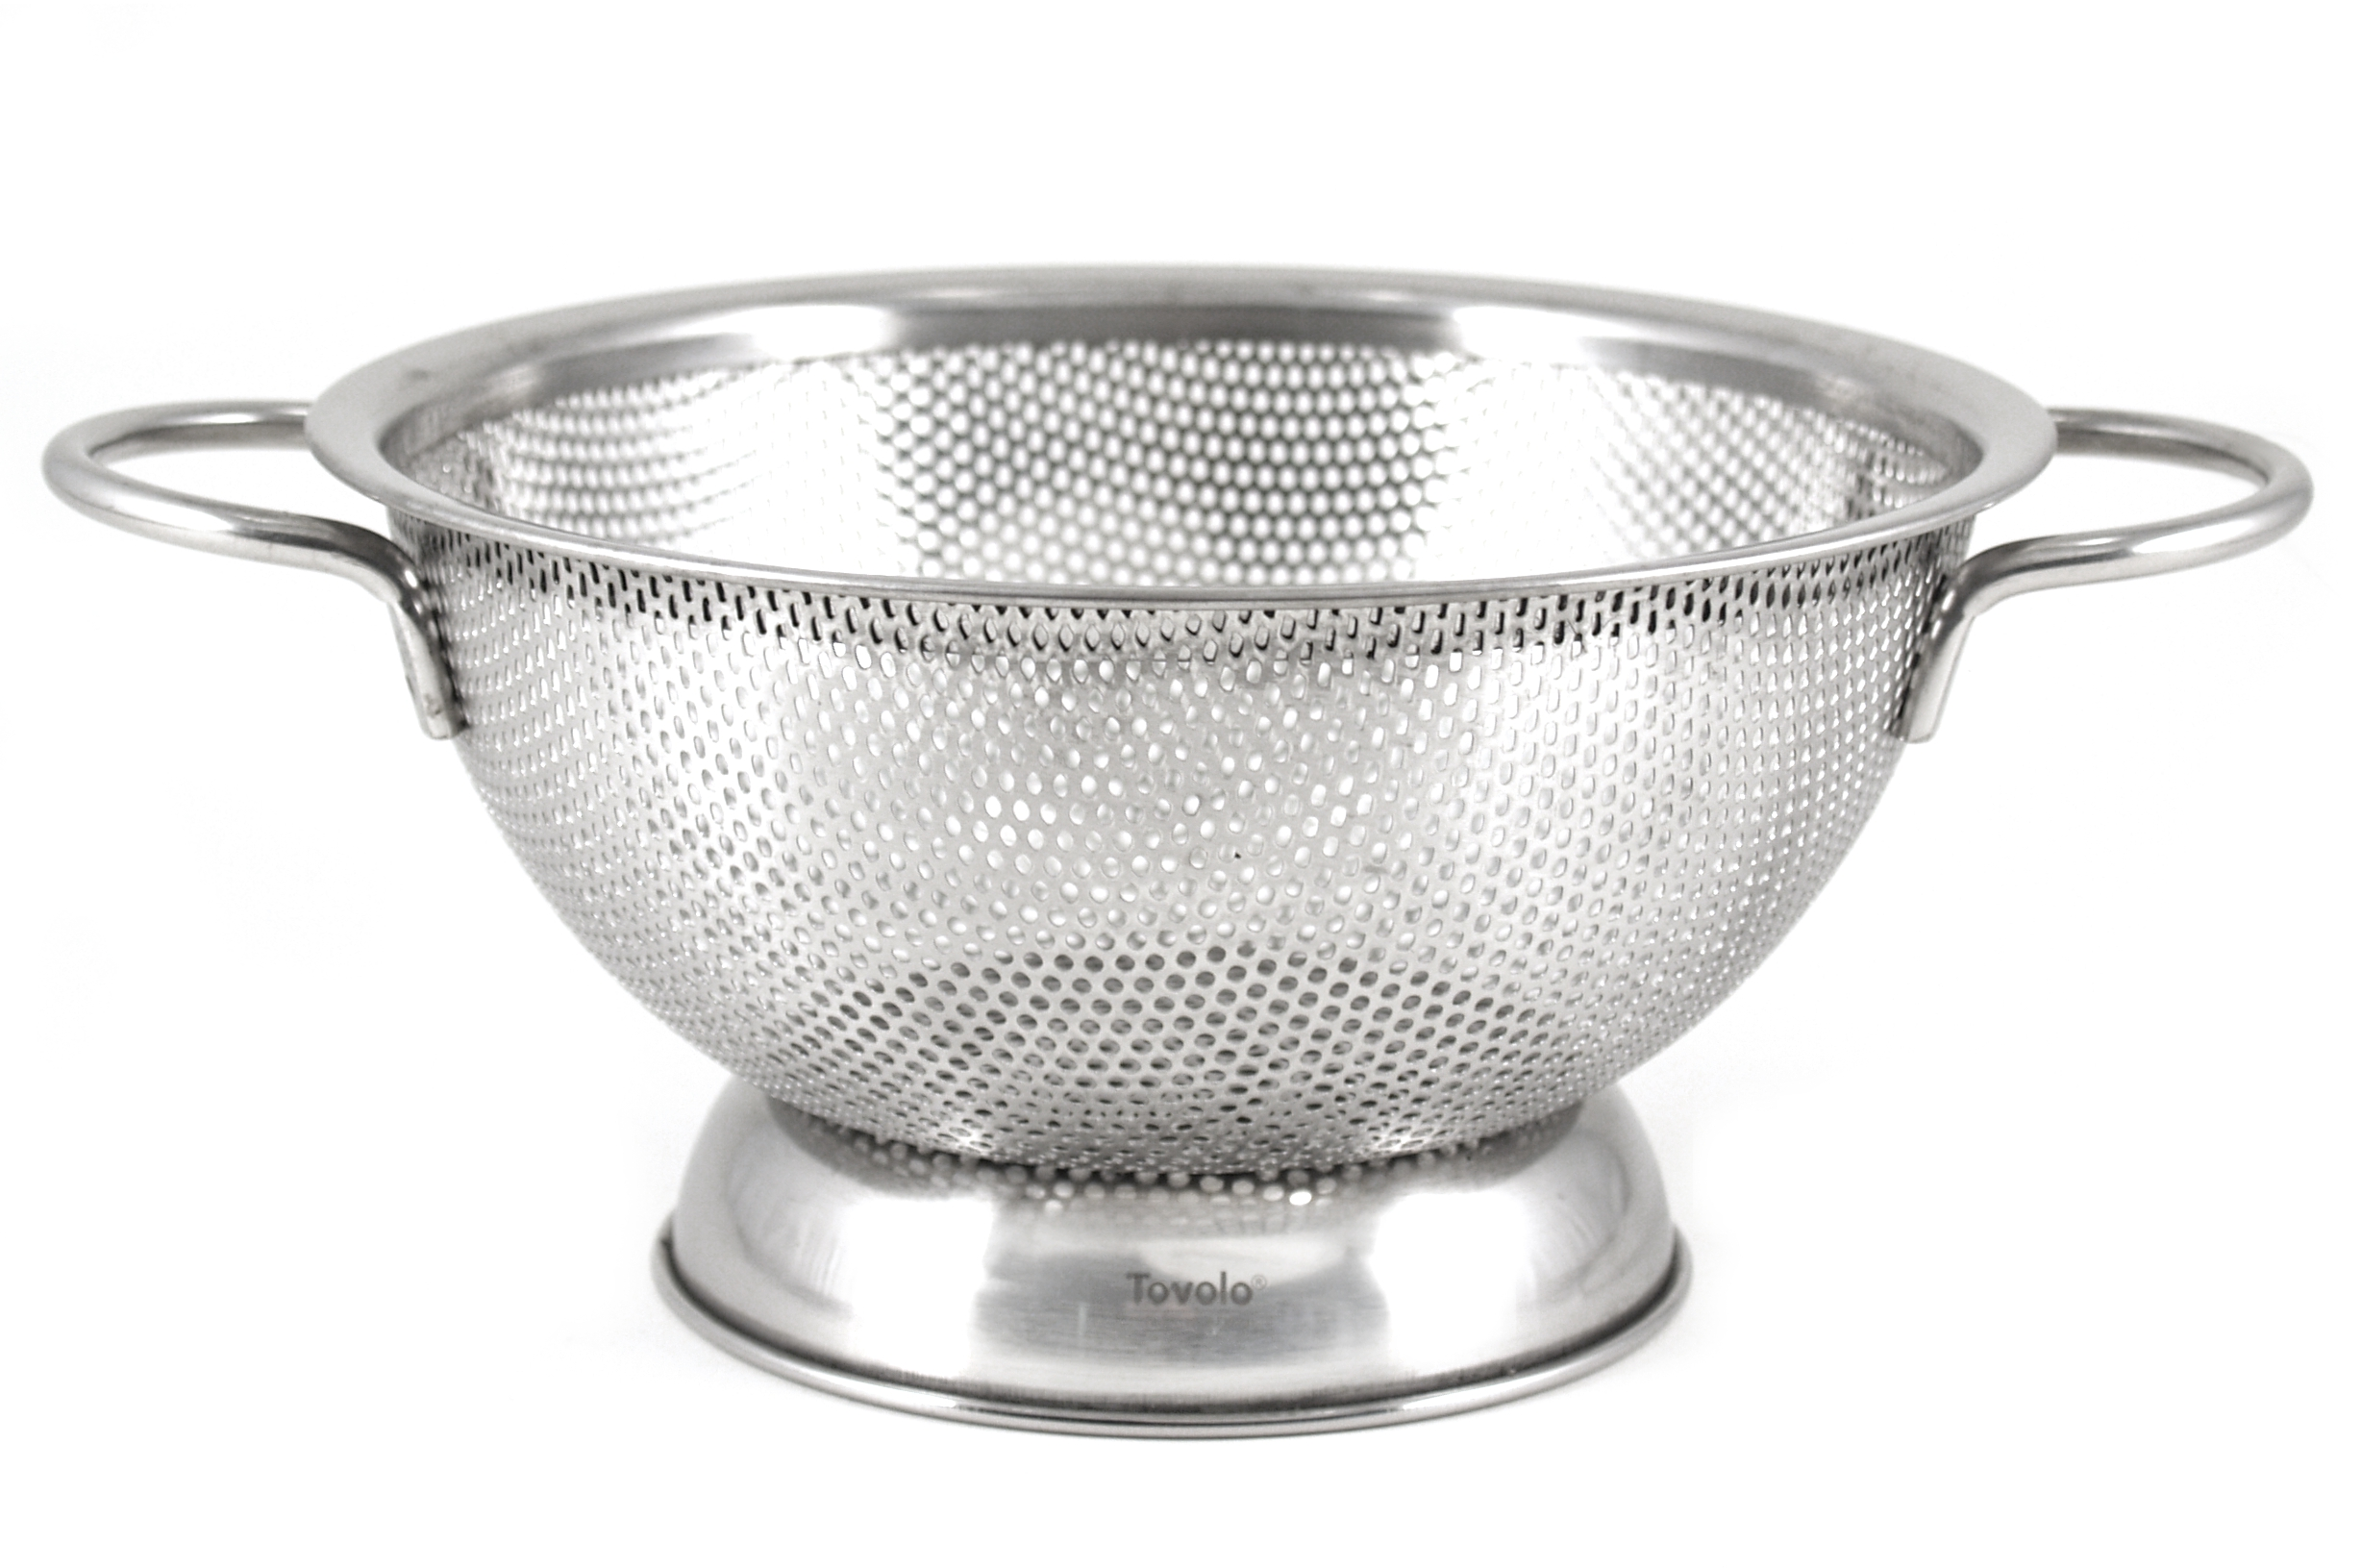 Tovolo Small Stainless Steel Perforated Colander